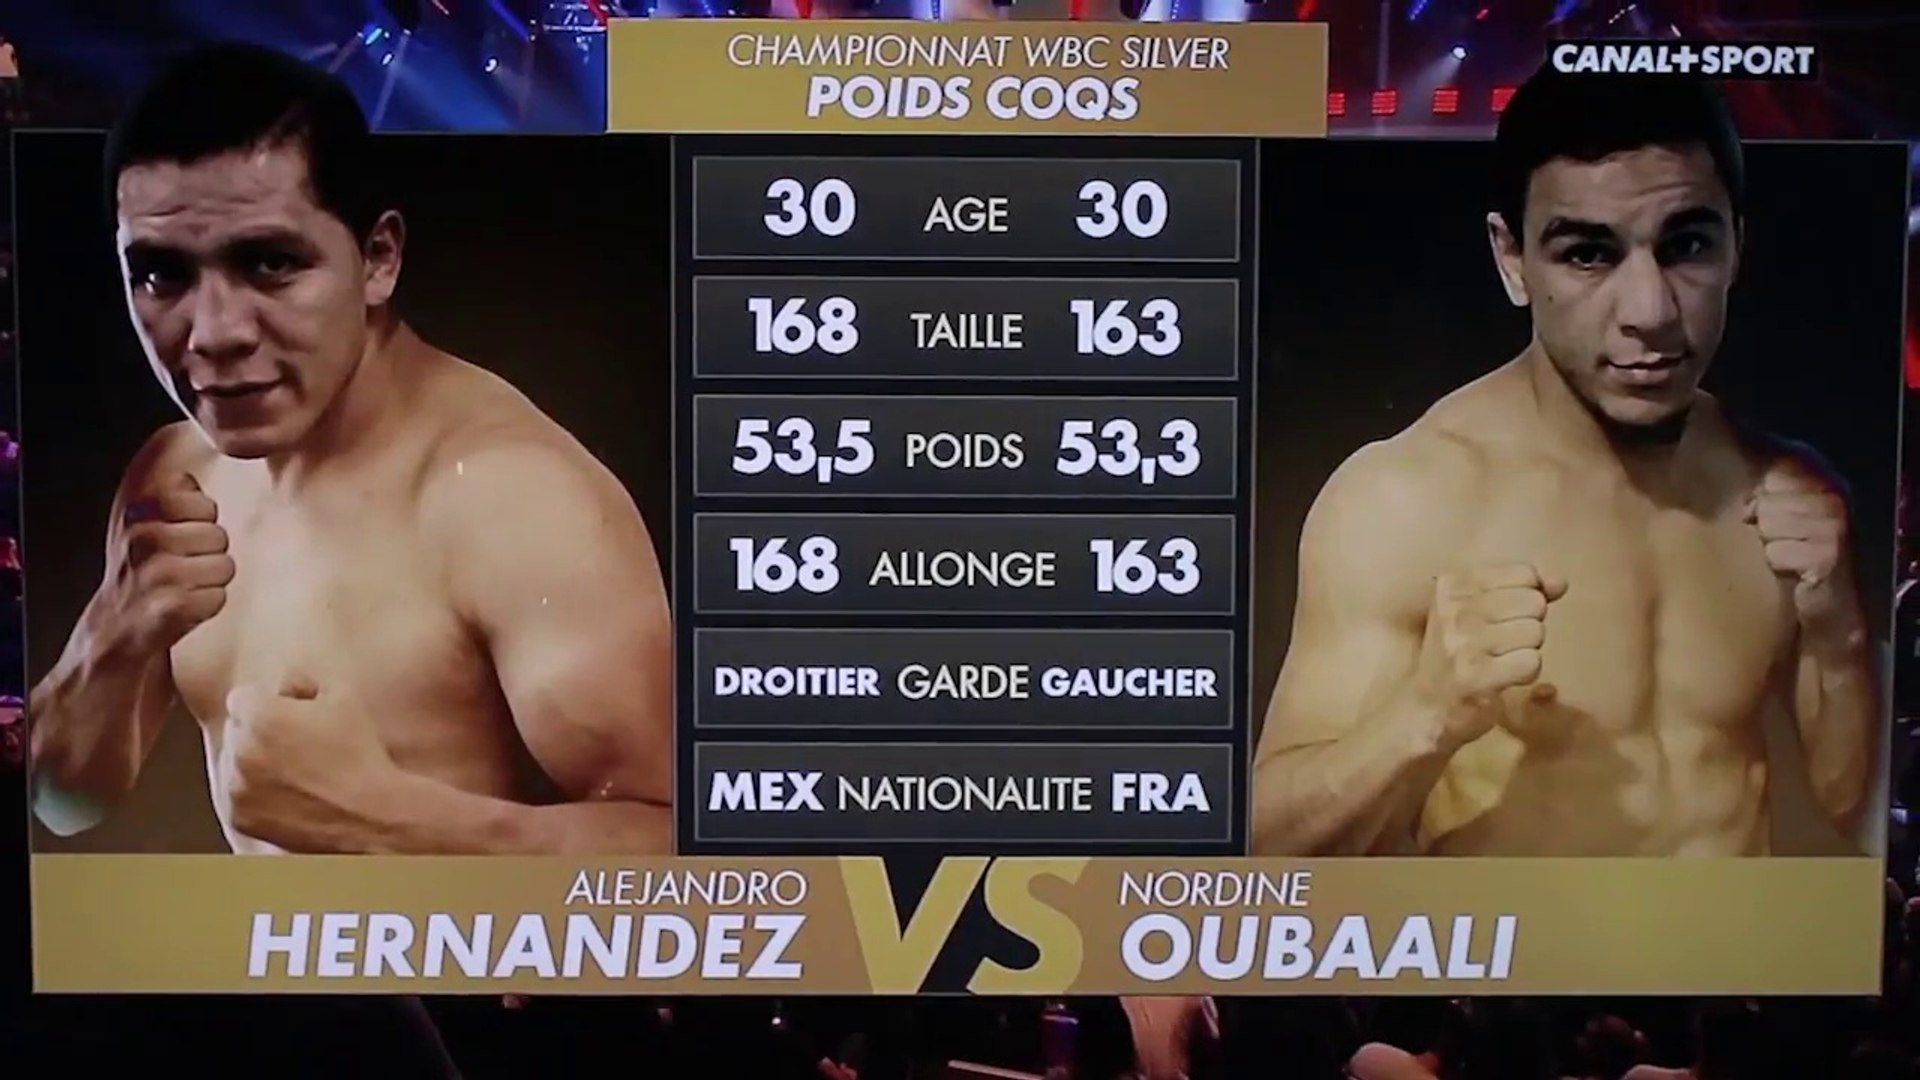 outlet sports shoes fresh styles Nordine Oubaali vs Alejandro Hernandez, WBC Silver poids coqs, 02 juin 2017